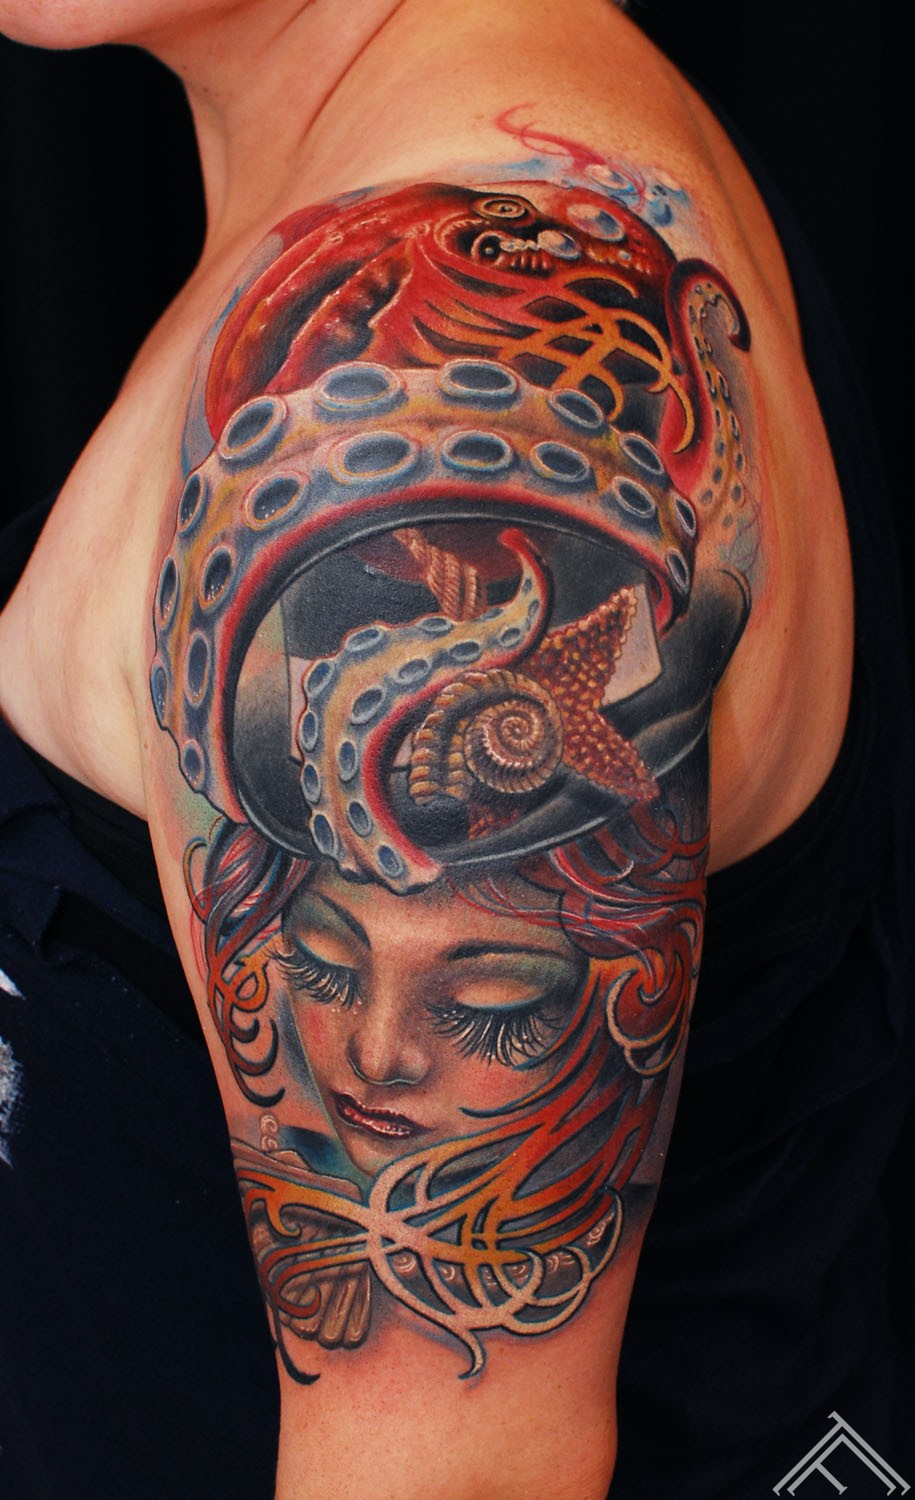 octopus_tophat_woman_nouveau_art_tattoo_tattoofrequency_clean